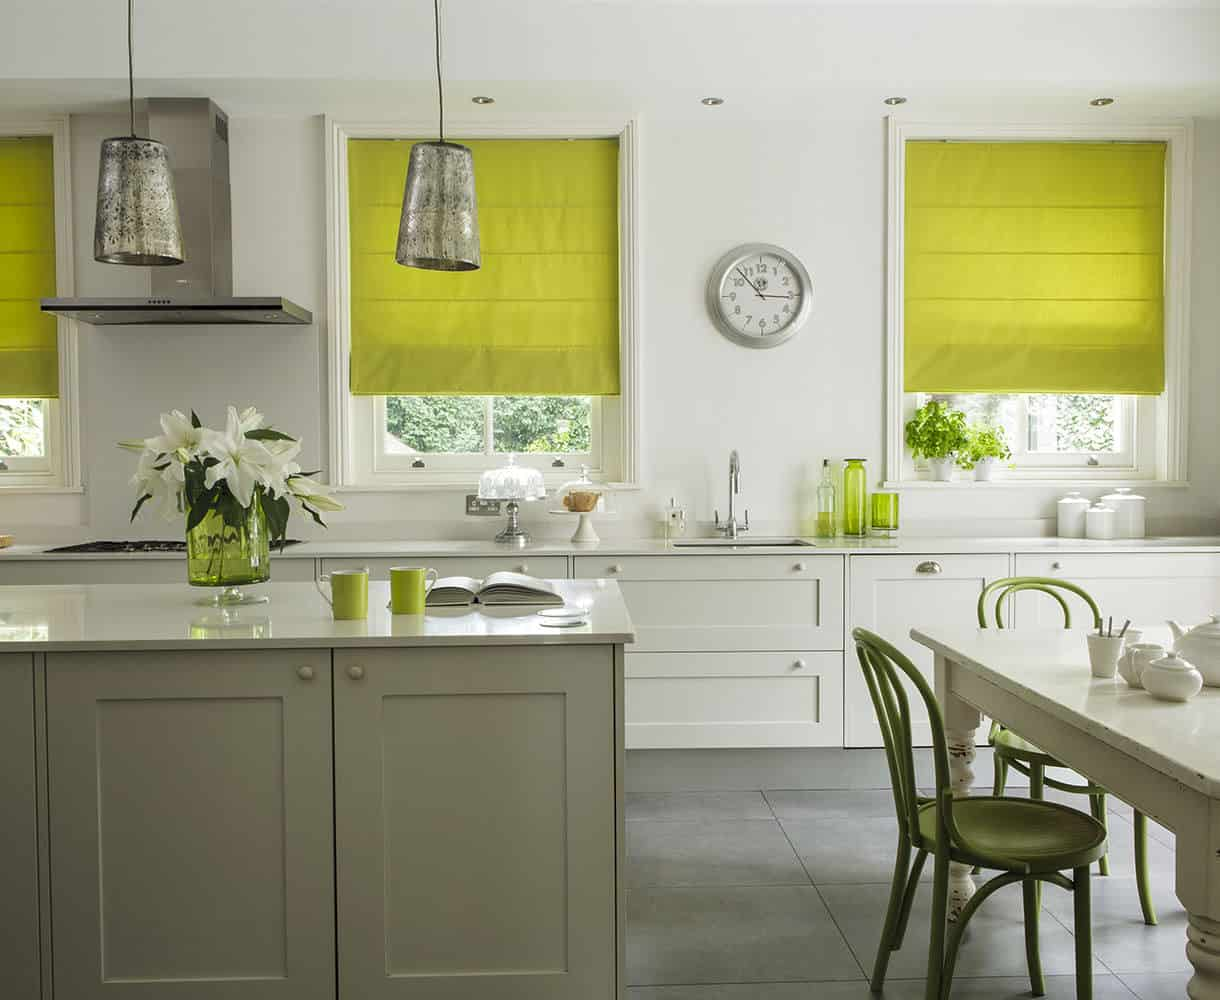 Roller Blinds For Kitchens We Can Install And Supply Kitchen Blinds In Cardiff 3 Blinds Nice